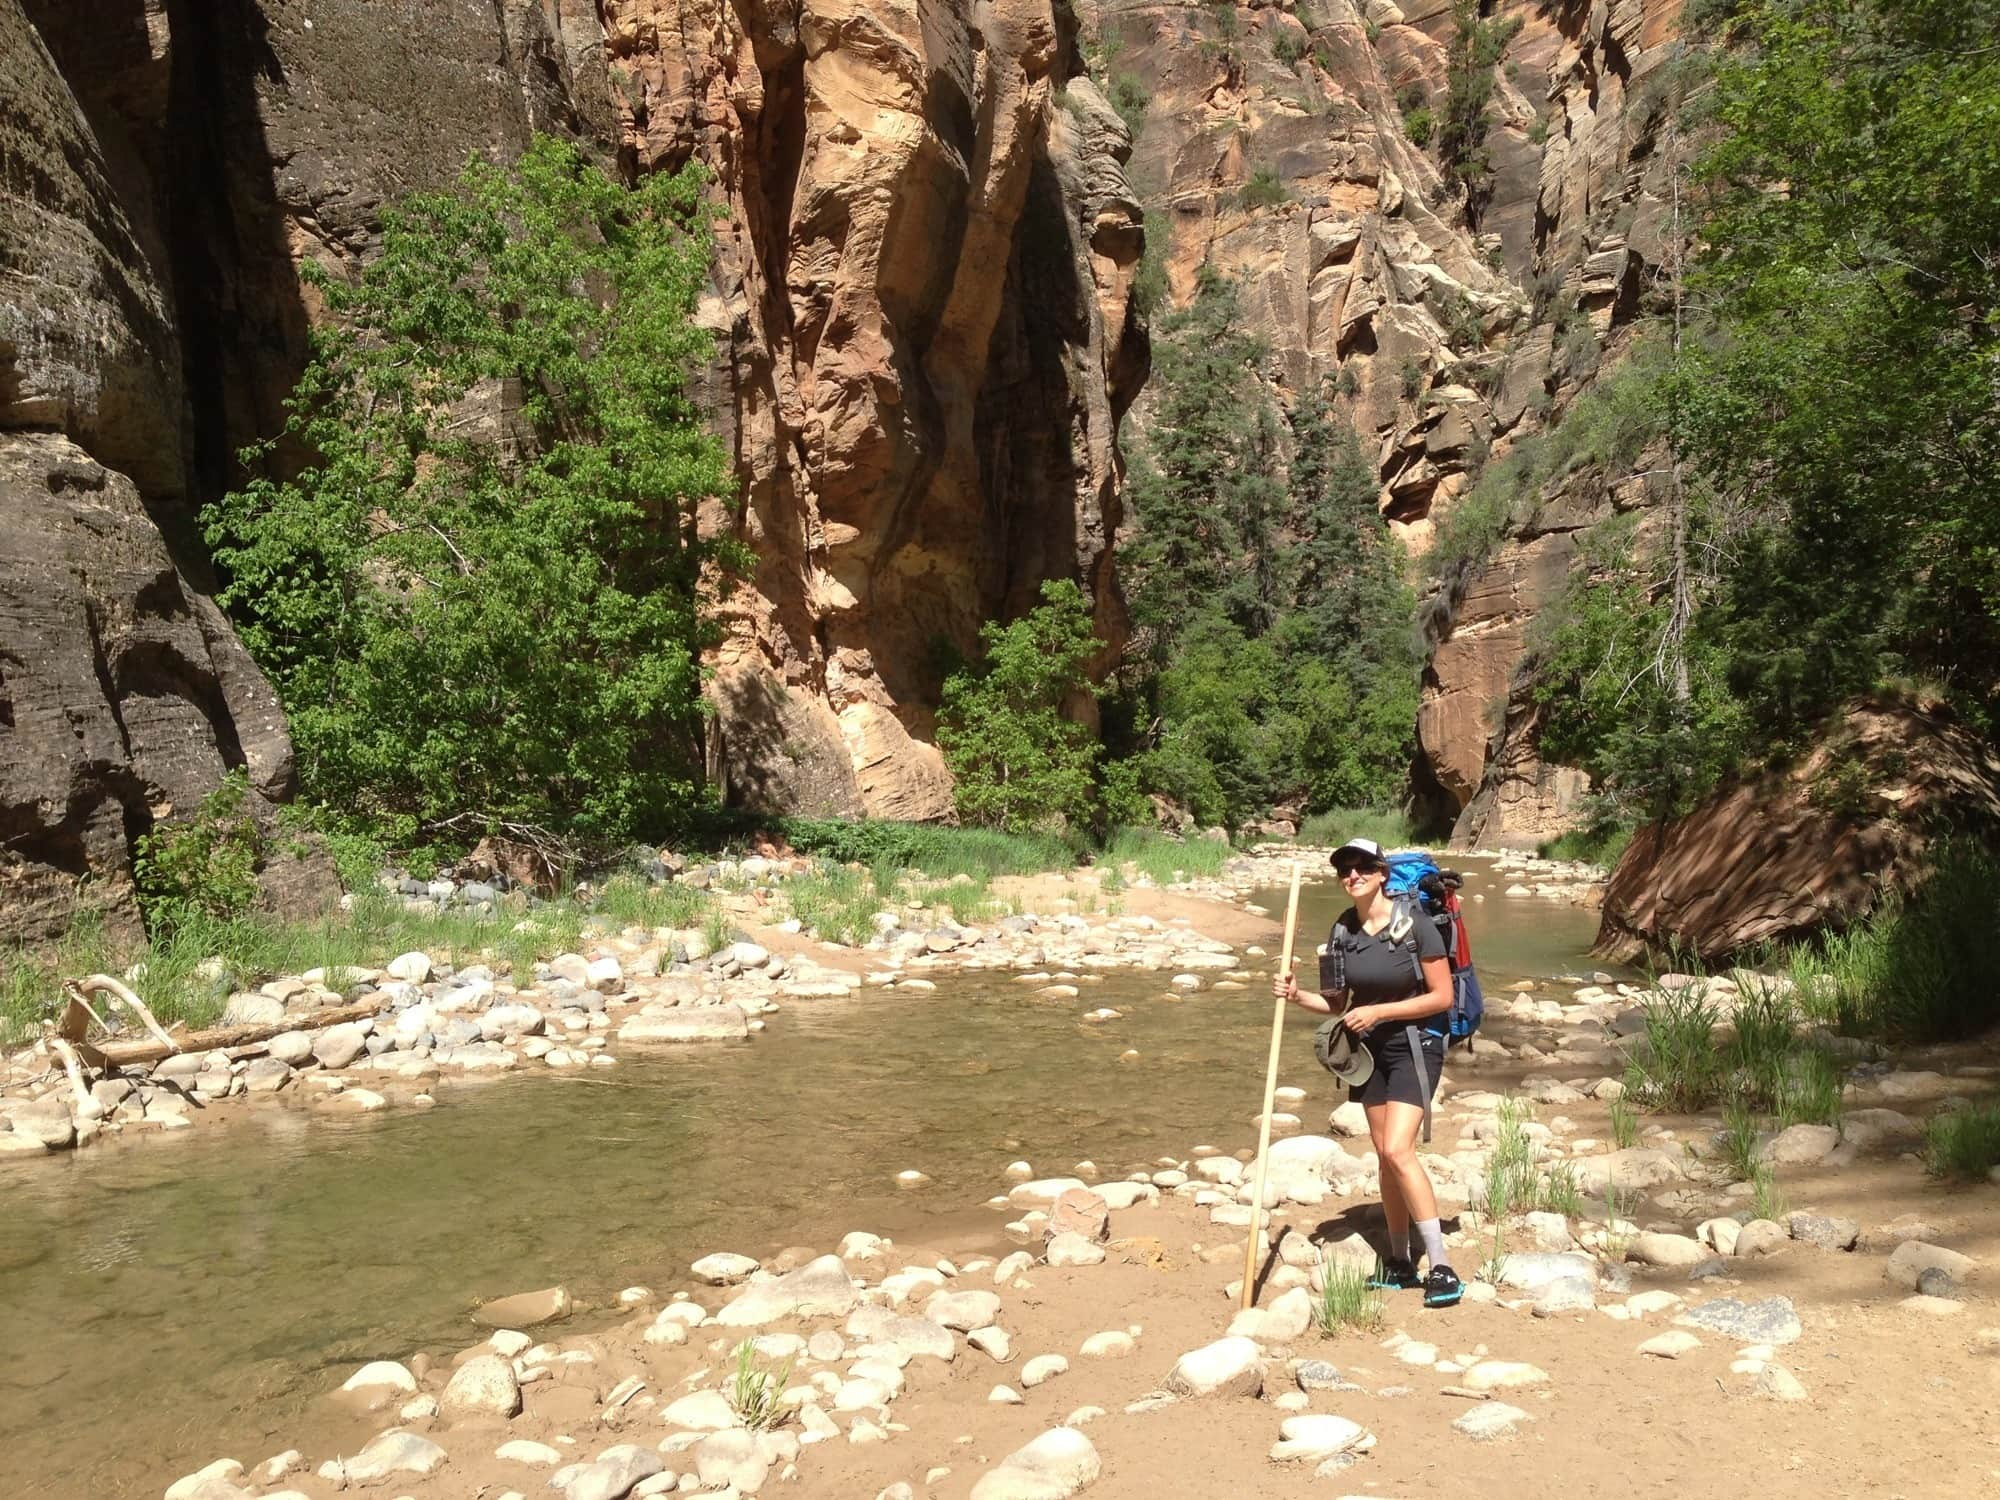 Hiking the Zion Narrows: What Gear to Bring